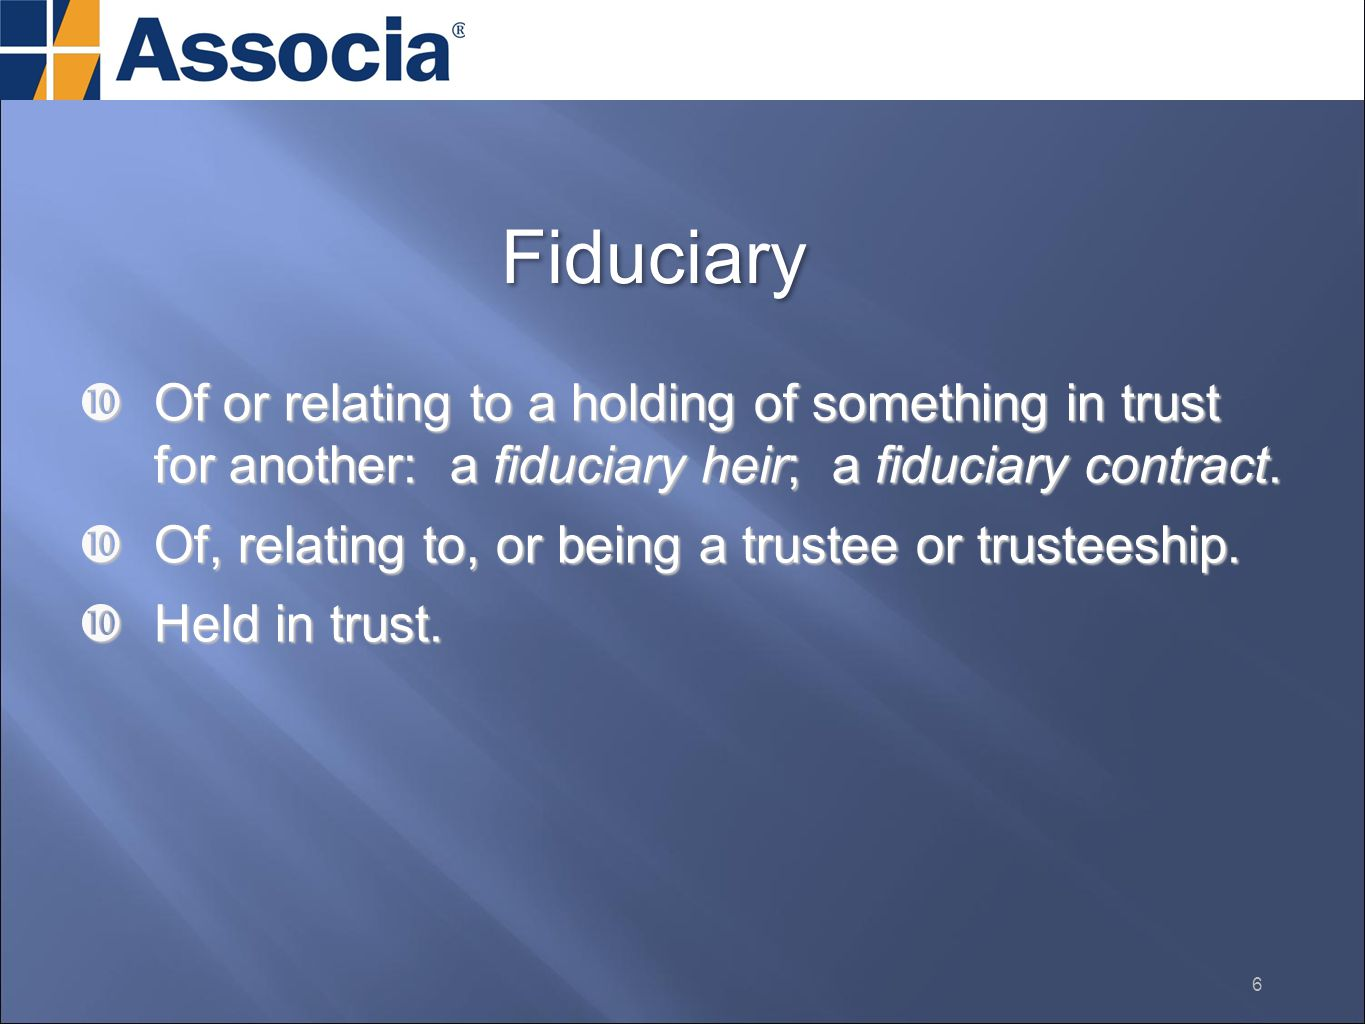  Of or relating to a holding of something in trust for another: a fiduciary heir; a fiduciary contract.